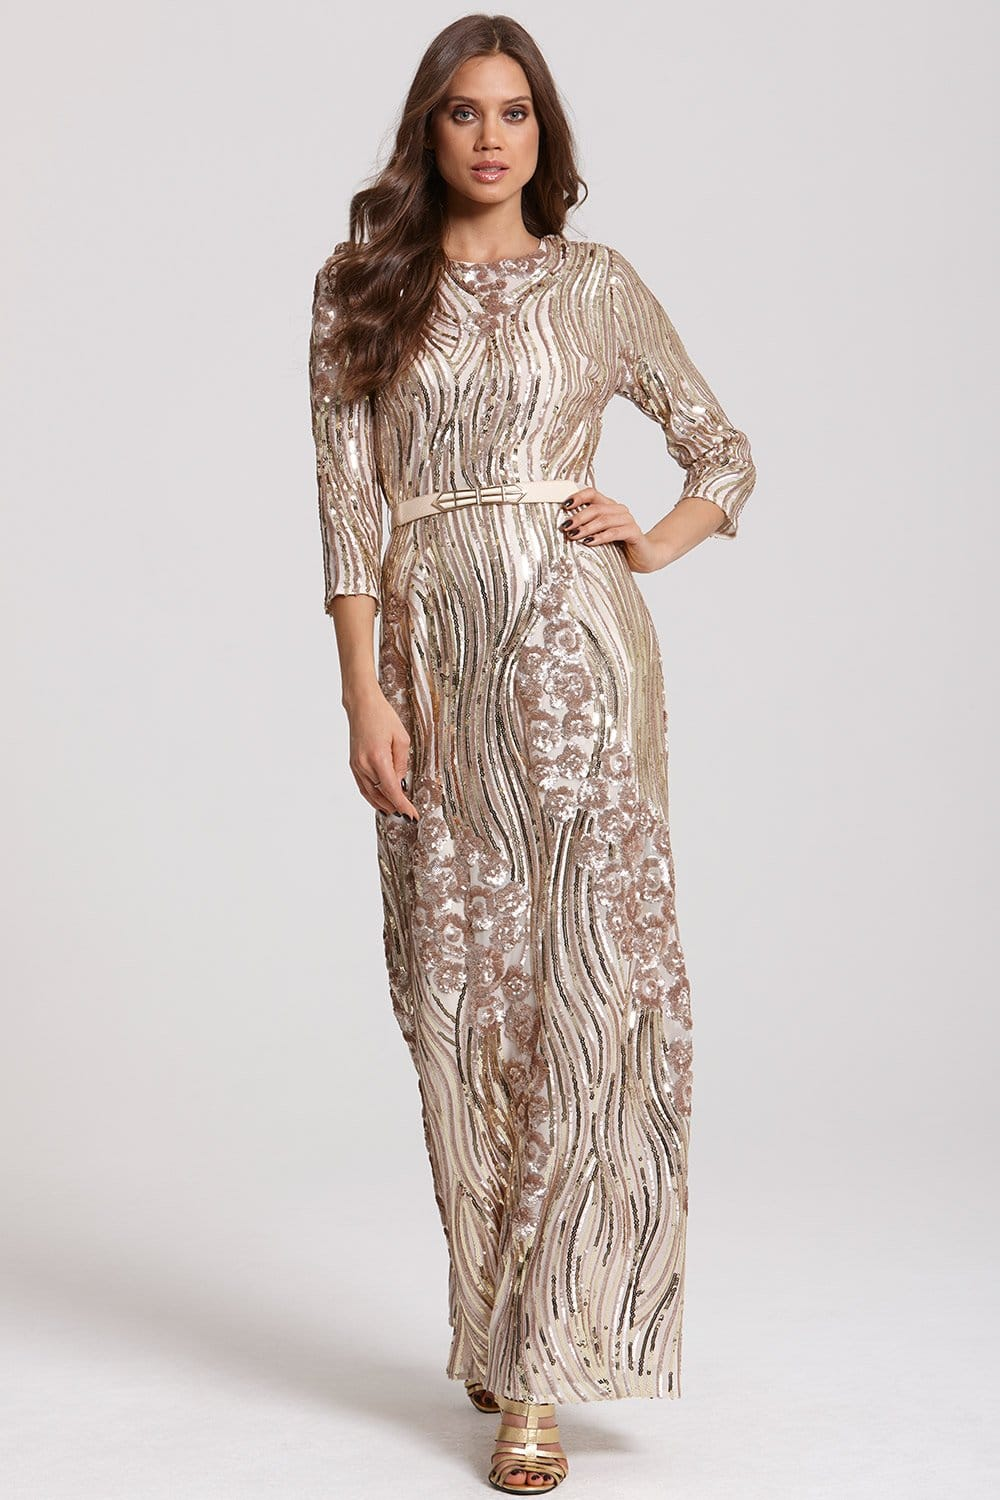 Gold And Mink Heavily Embellished Maxi Dress From Little